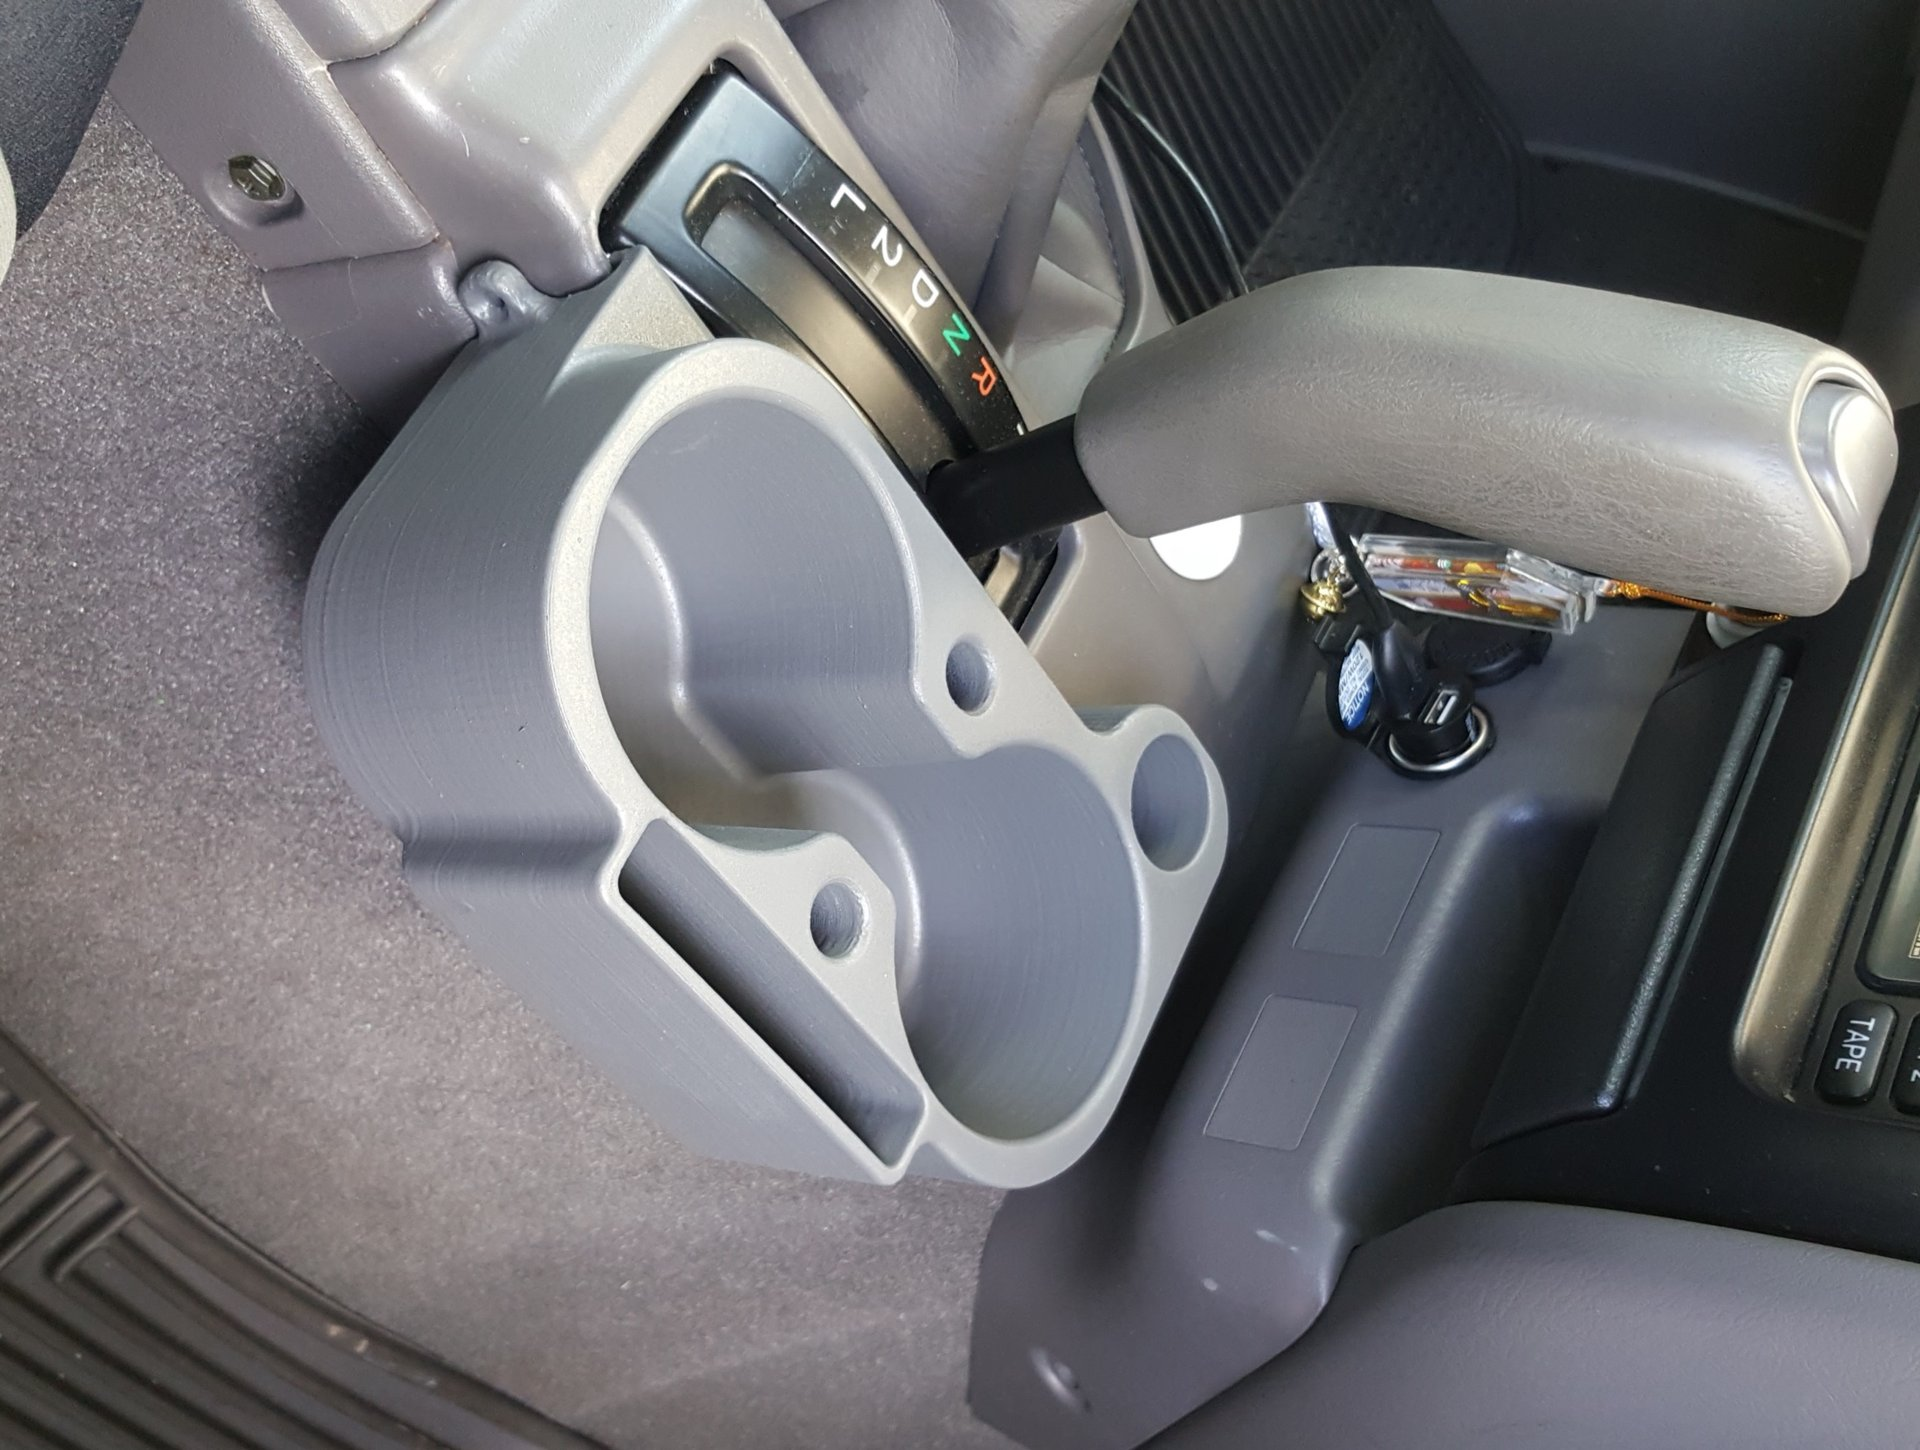 3rd Gen 4Runner and Tacoma Cup Holders | IH8MUD Forum